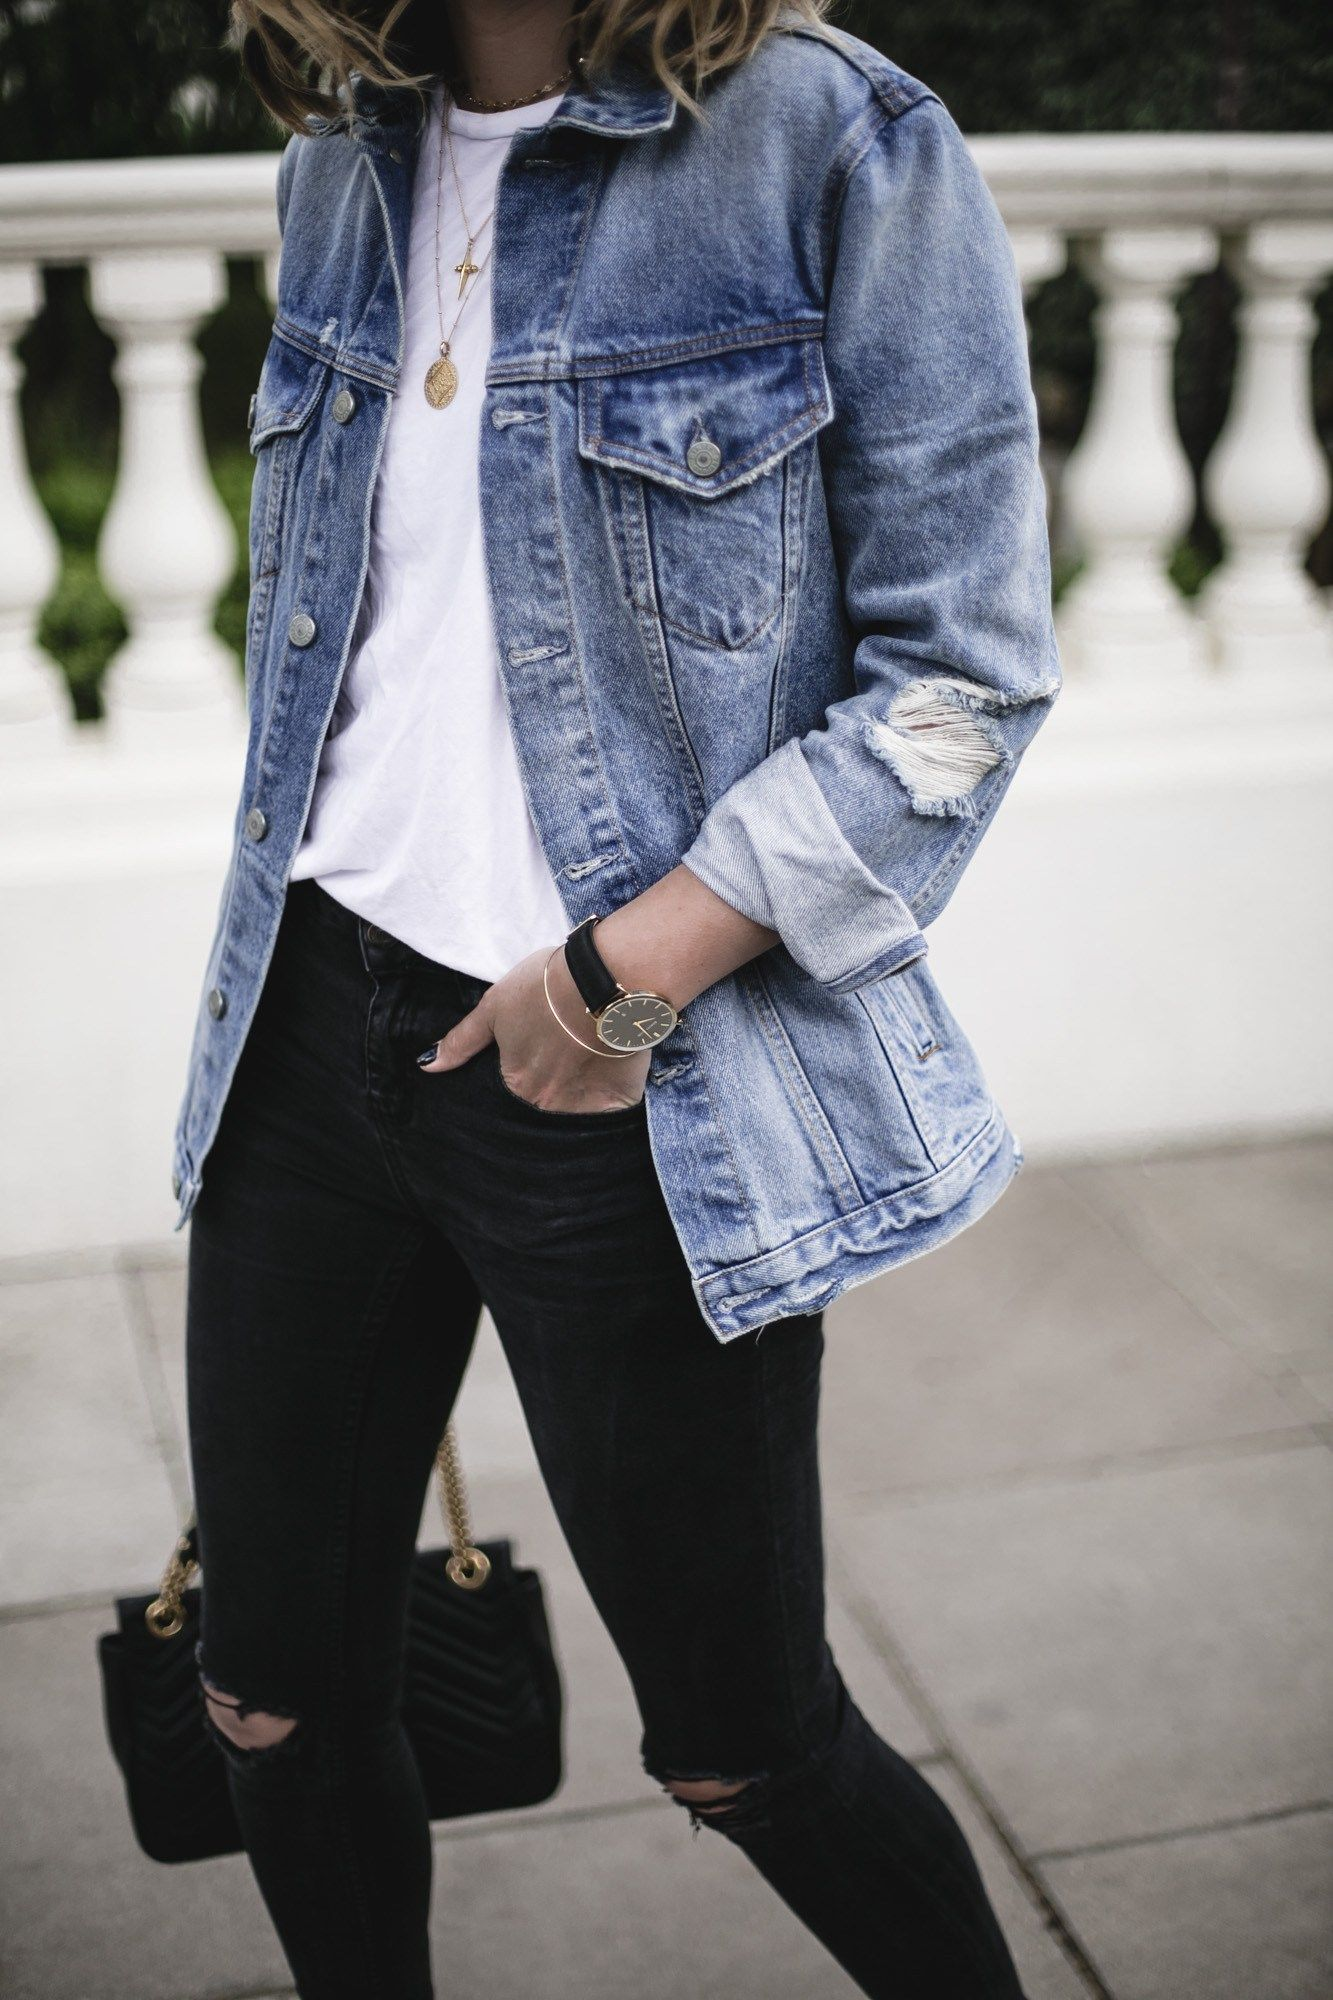 f7b91c8265 Emma Hill wears Grlfrnd oversized denim jacket, white t-shirt, black skinny  jeans, gold jewellery, Gucci Marmont bag